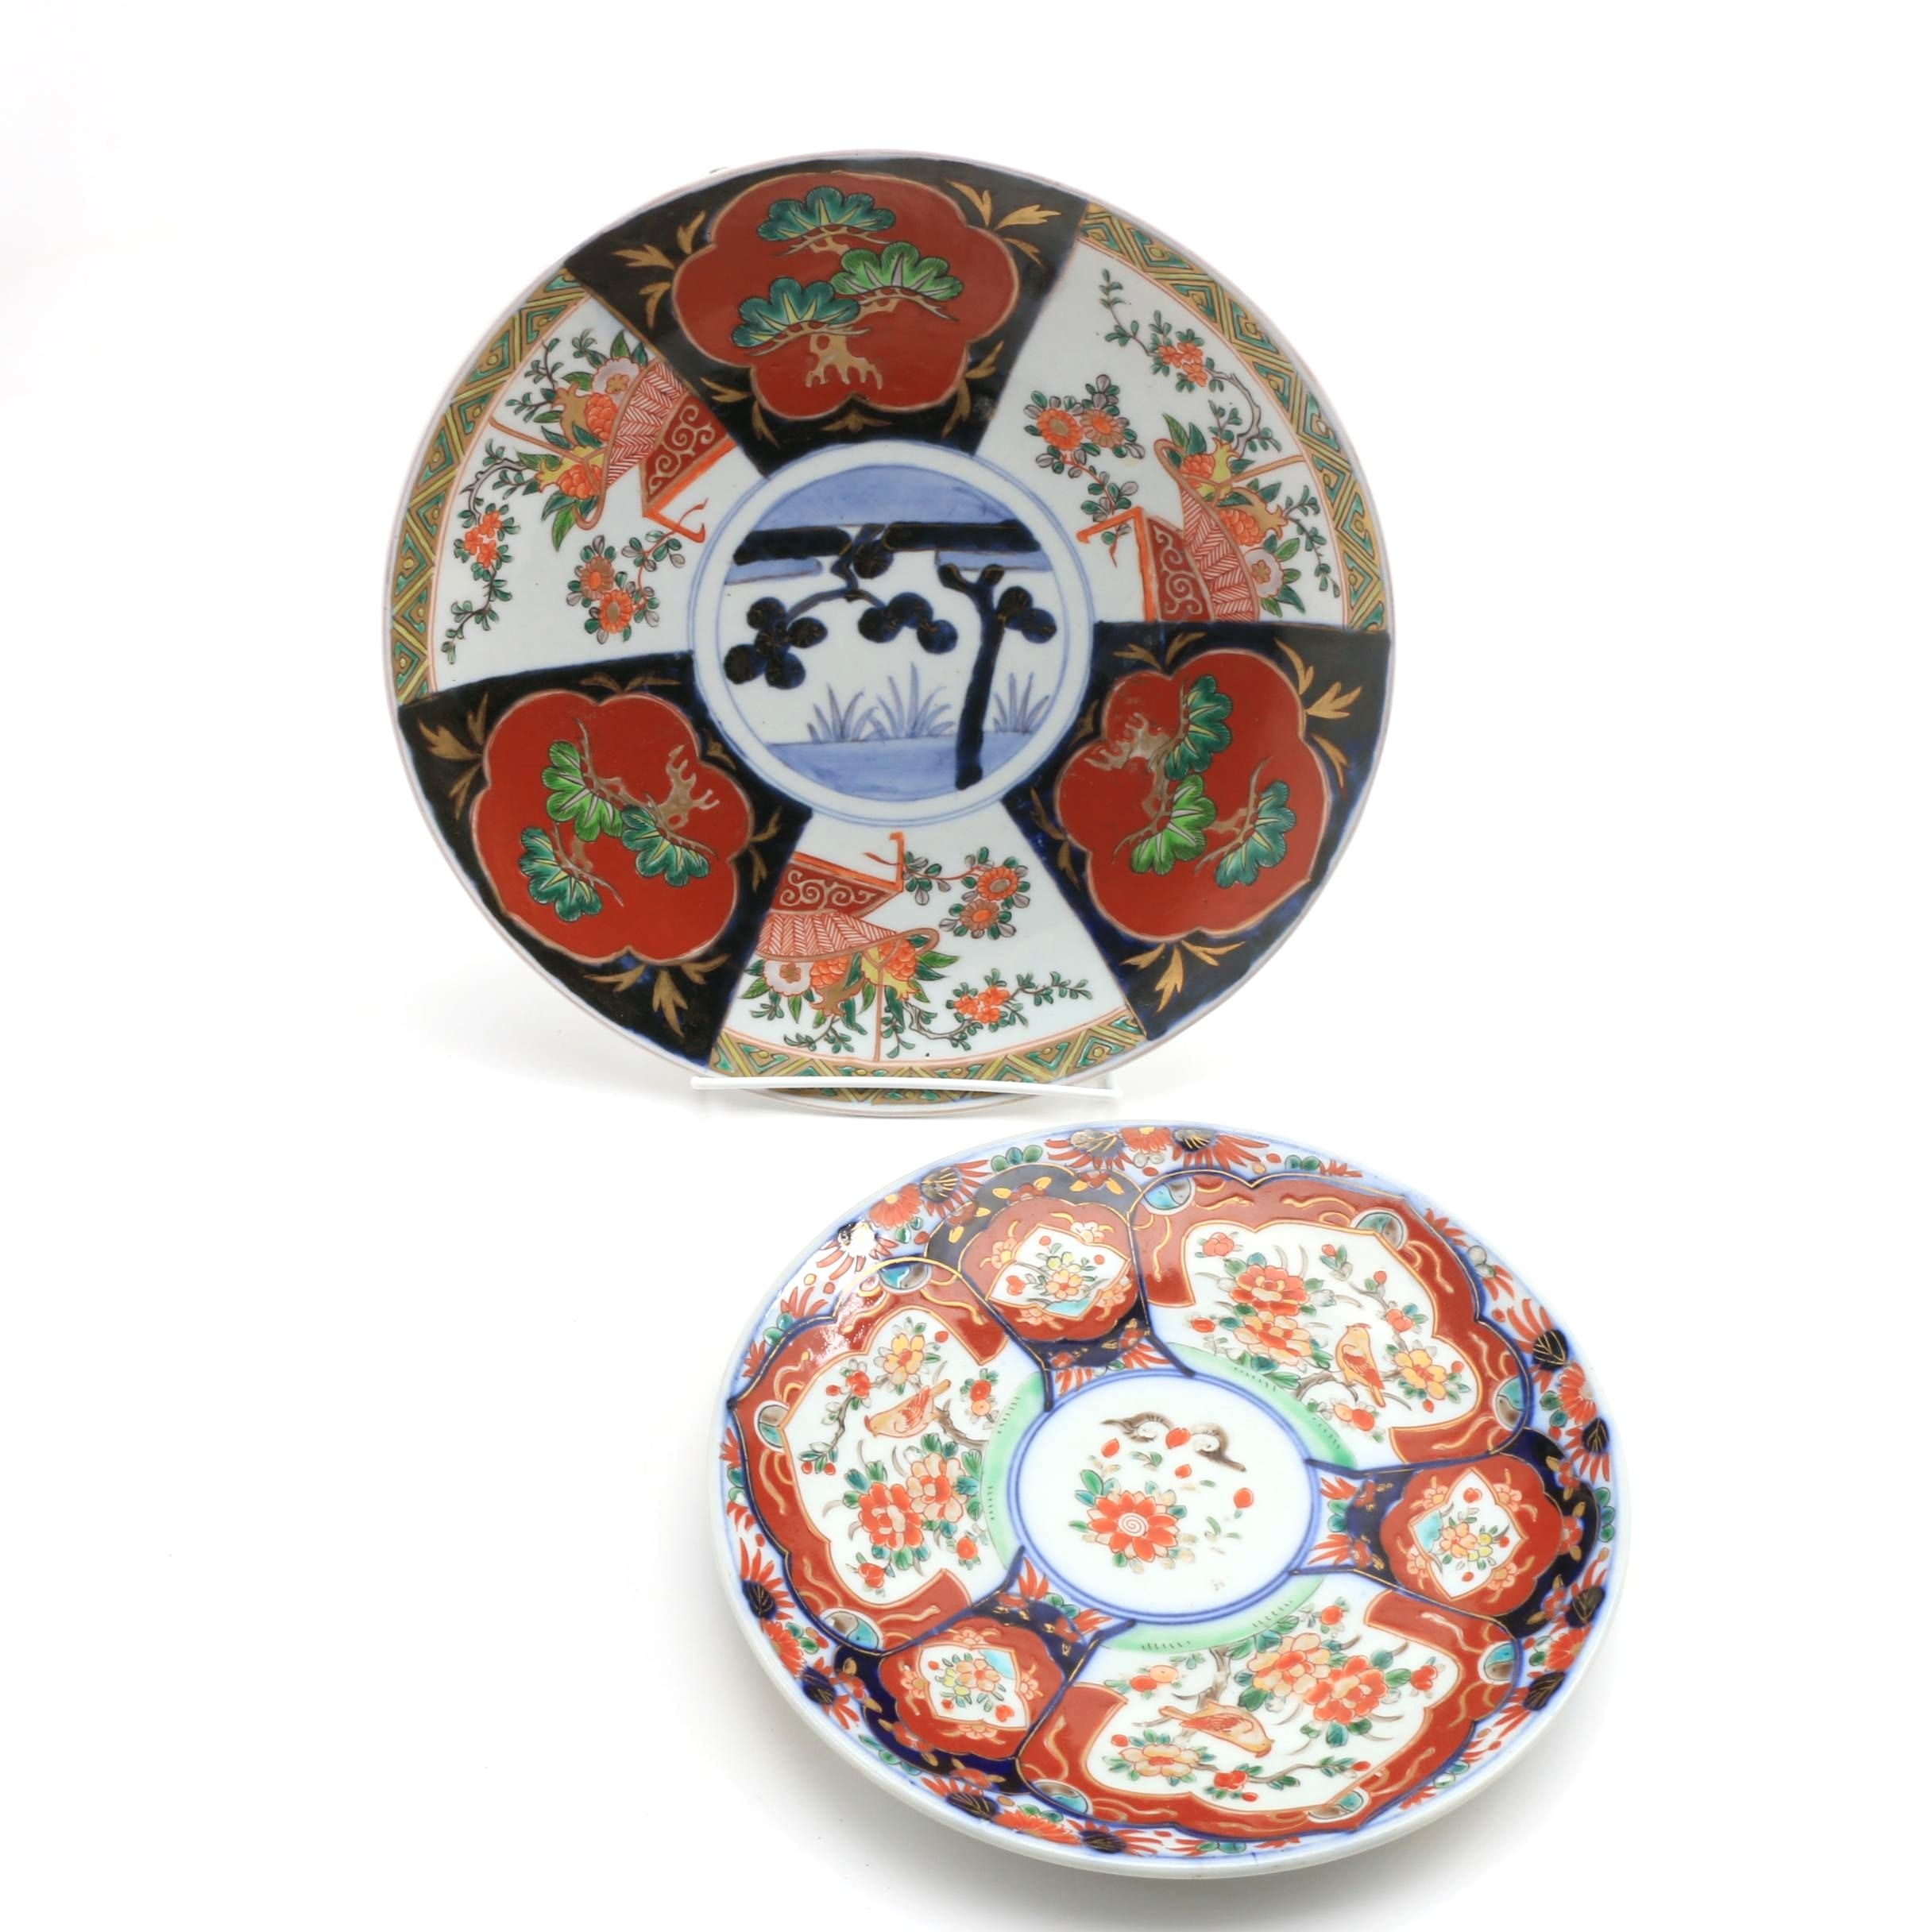 Japanese Imari Porcelain Charger and Plate